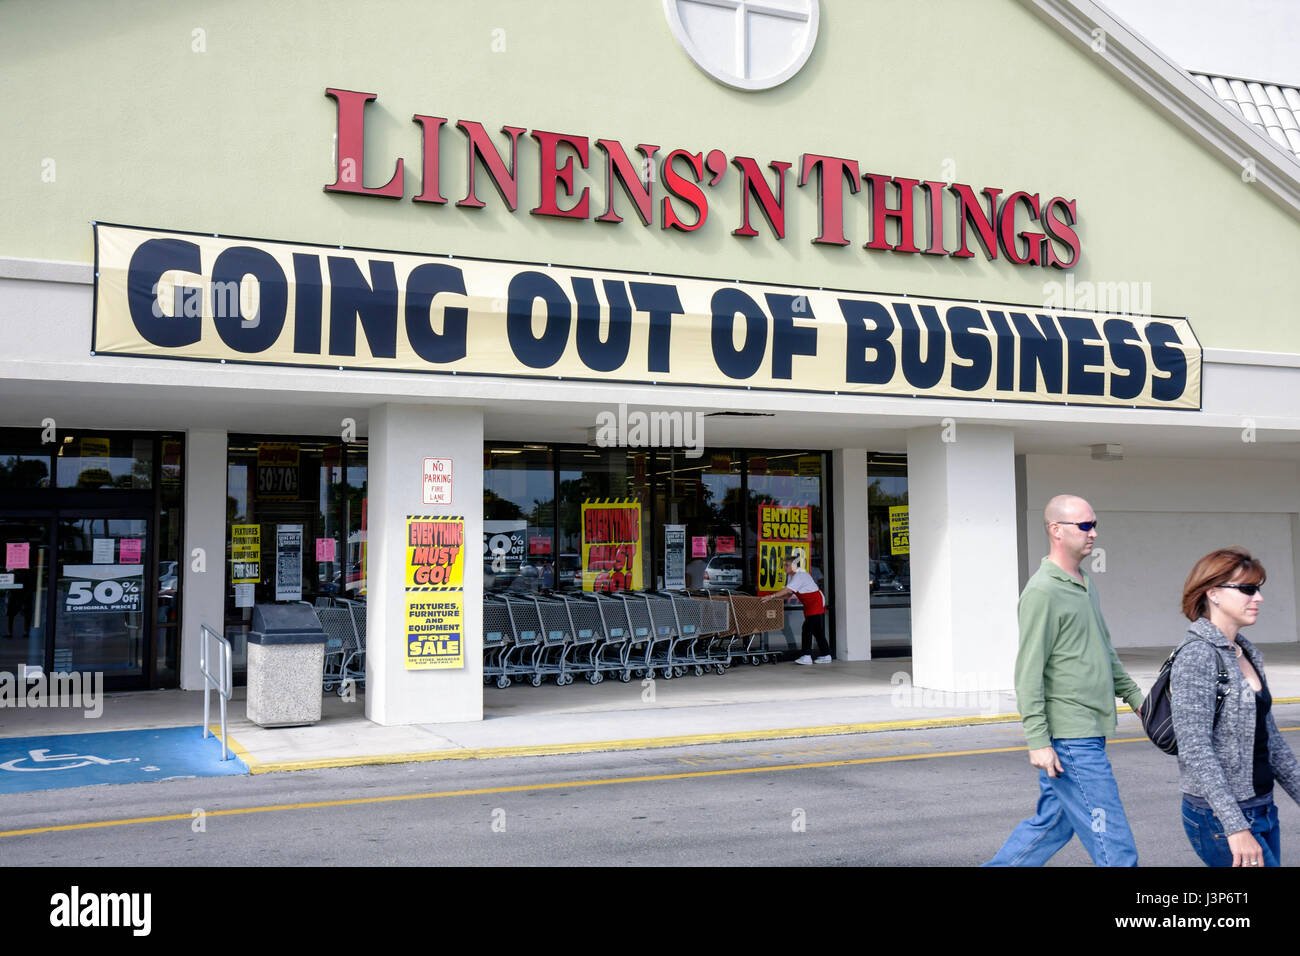 Naples Florida Linensn Things Store Franchise Chain Going Out Of Business Economy Sale Discounts National Retailer Home Decor F